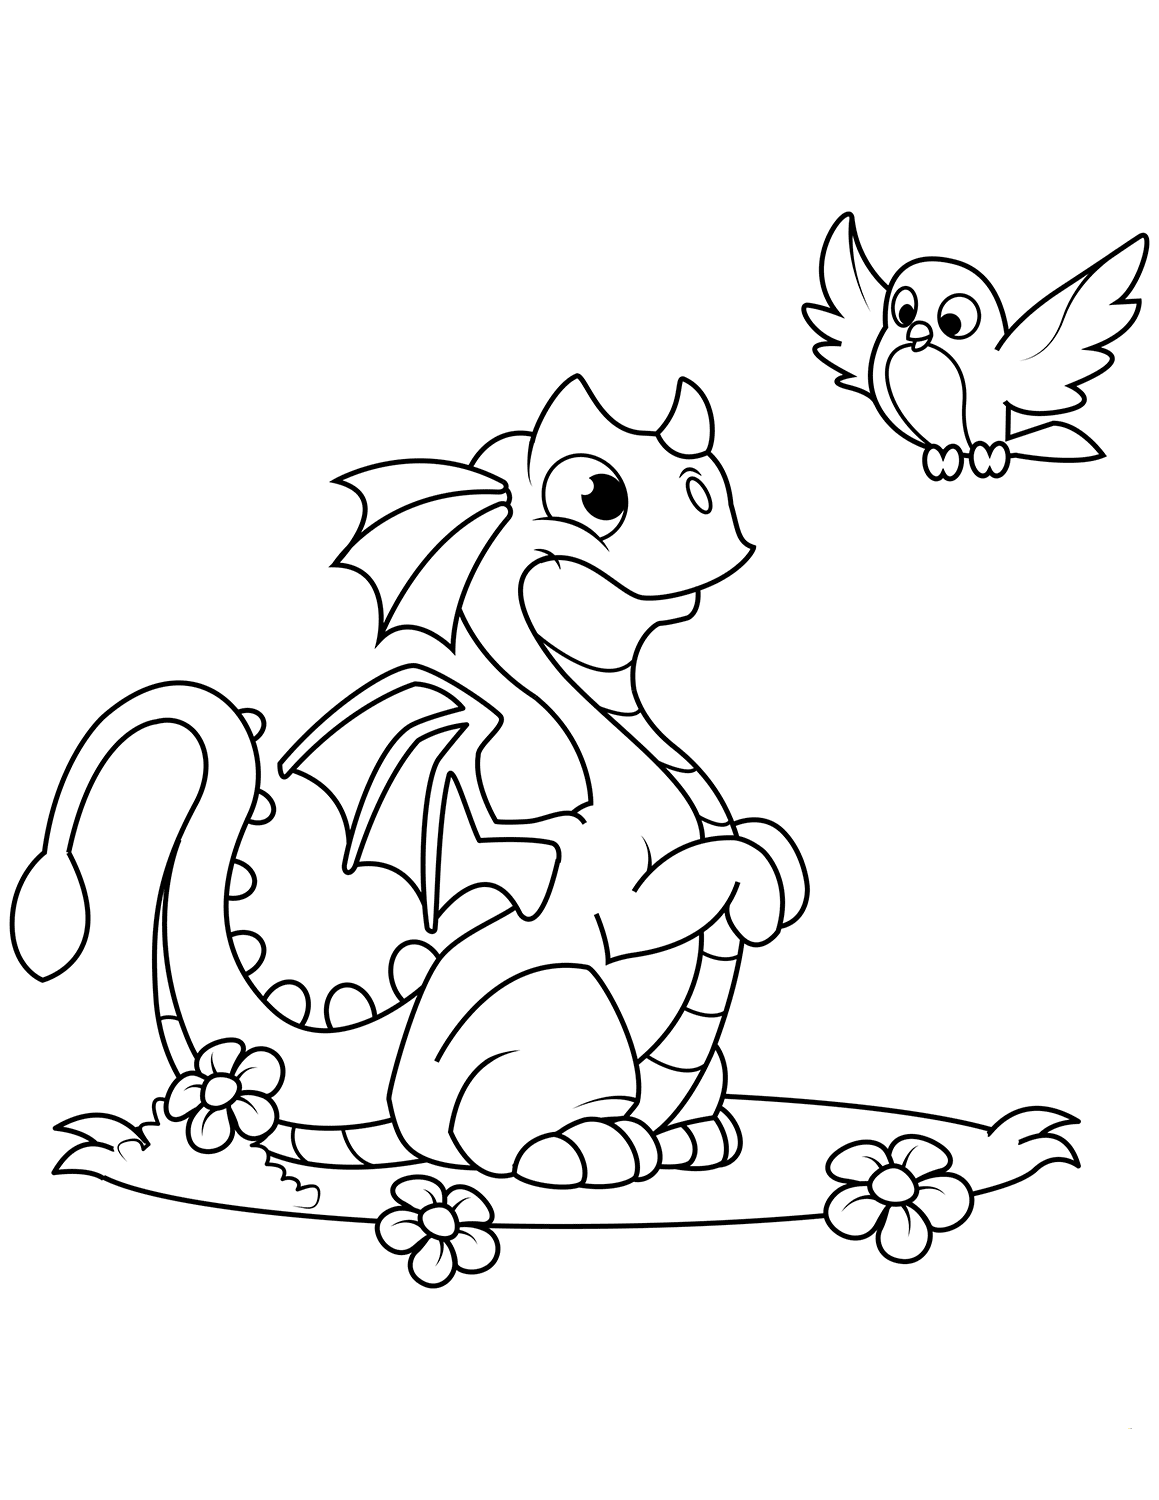 printable dragon pictures printable dragon coloring pages for kids cool2bkids printable dragon pictures